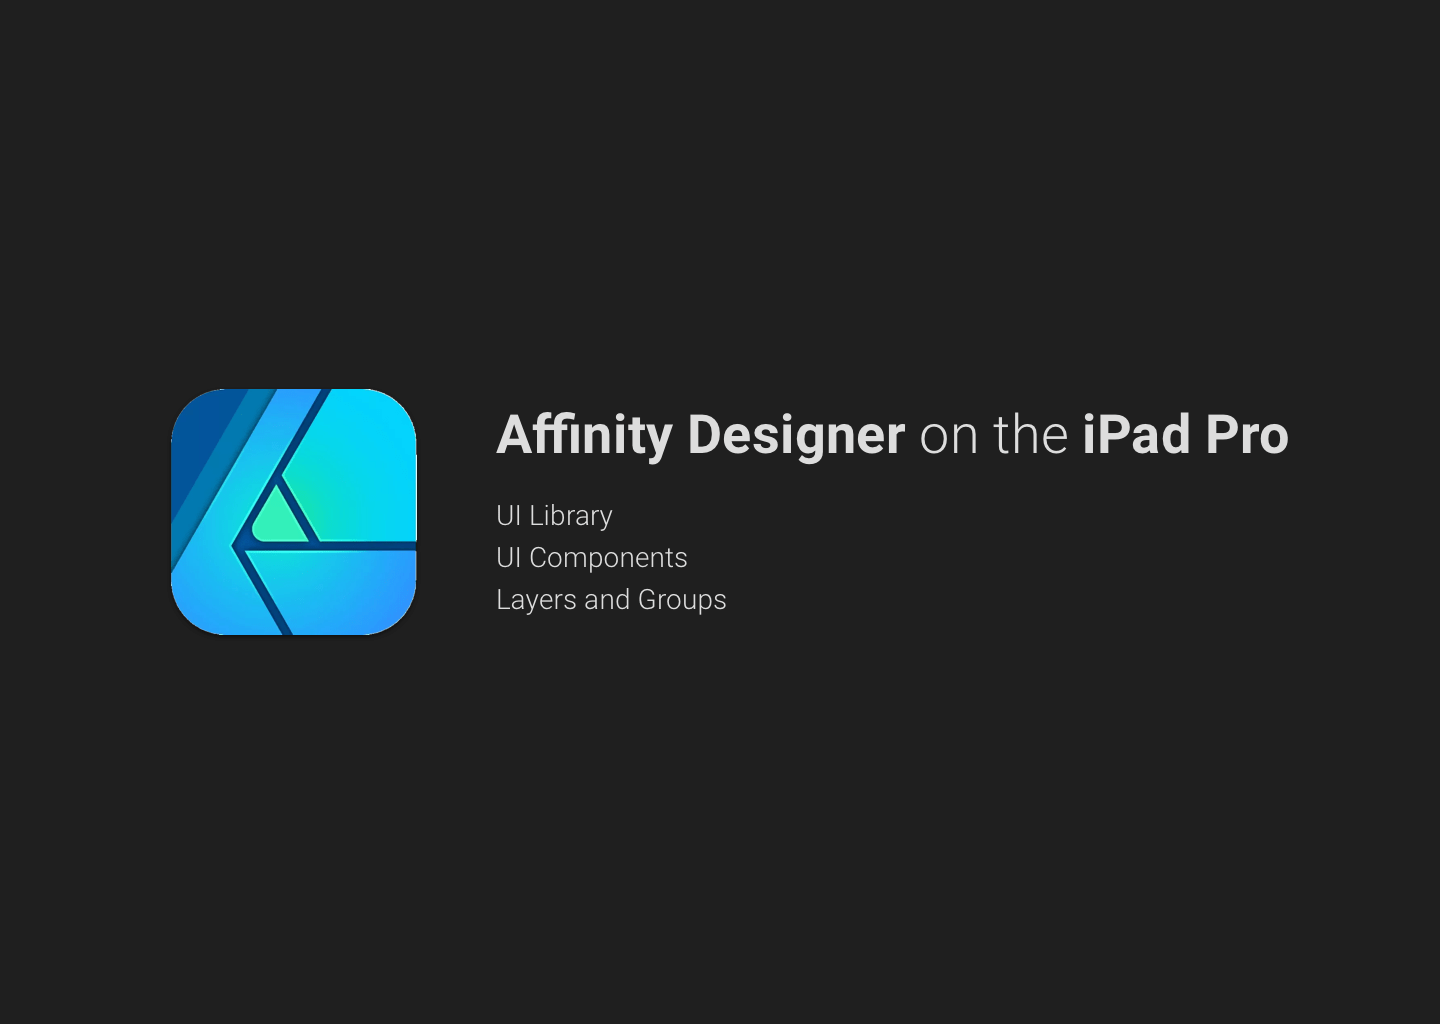 Affinity Designer on the iPad Pro 2018